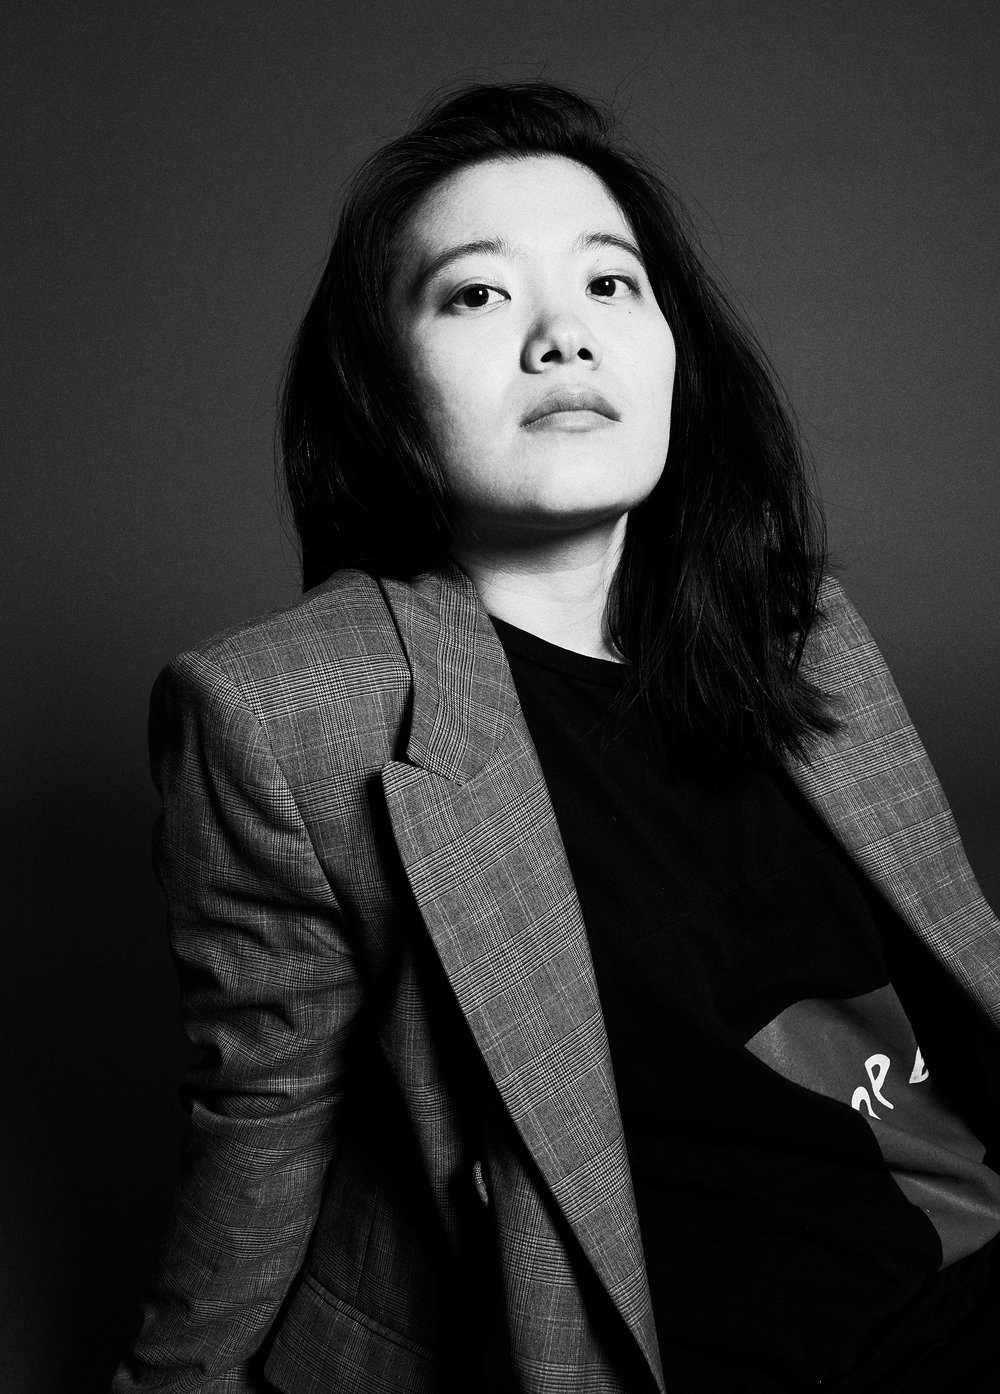 "Siqin Bian - Siqin Bian is a director and photographer based in New York City. She attended The School of Visual Arts where she received her Masters in Fashion Photography. Originally born in China, and later on she moved to New Mexico before perusing a career in fashion photography in New York City. Siqin loves to capture people and fashion, and often brings her set on locations.With a background in mixed cultures, Siqin always tries to put narratives and imaginations in her work which brings out a different prospective and intimacy about her subjects. ""Imagination has no limits."" Siqin believes everyone is a moving movie, with many beautiful scenes to capture and interpret.Her work has been published in Vogue Italia, Harper's BAZAAR China, and Judas Magazine."